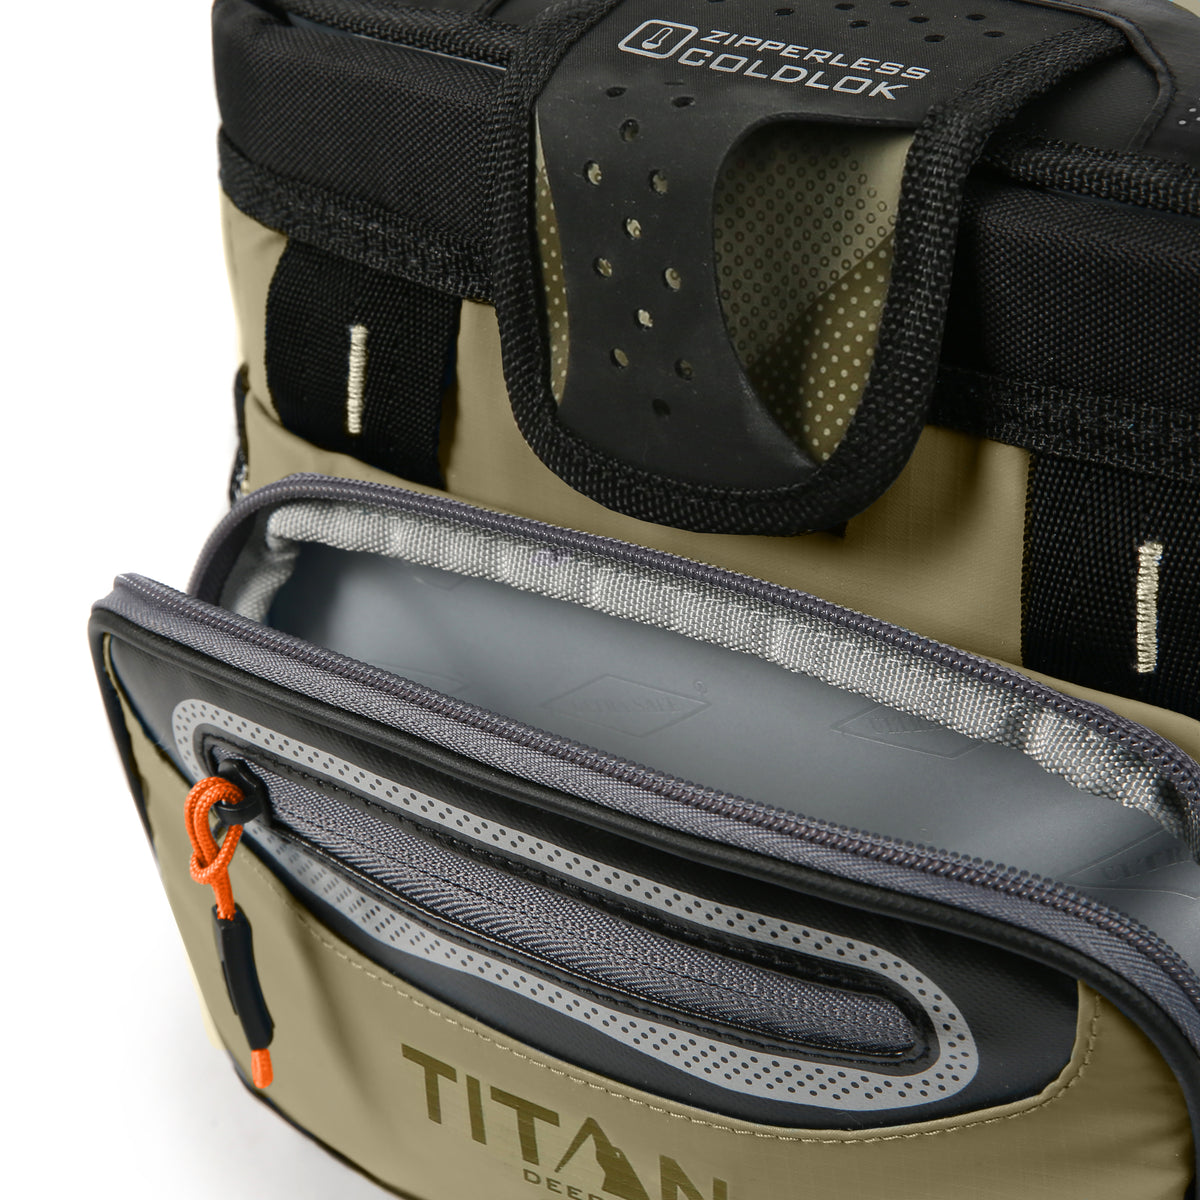 Titan Deep Freeze® 9 Can Zipperless™ HardBody® Cooler - Moss - Insulated front pocket